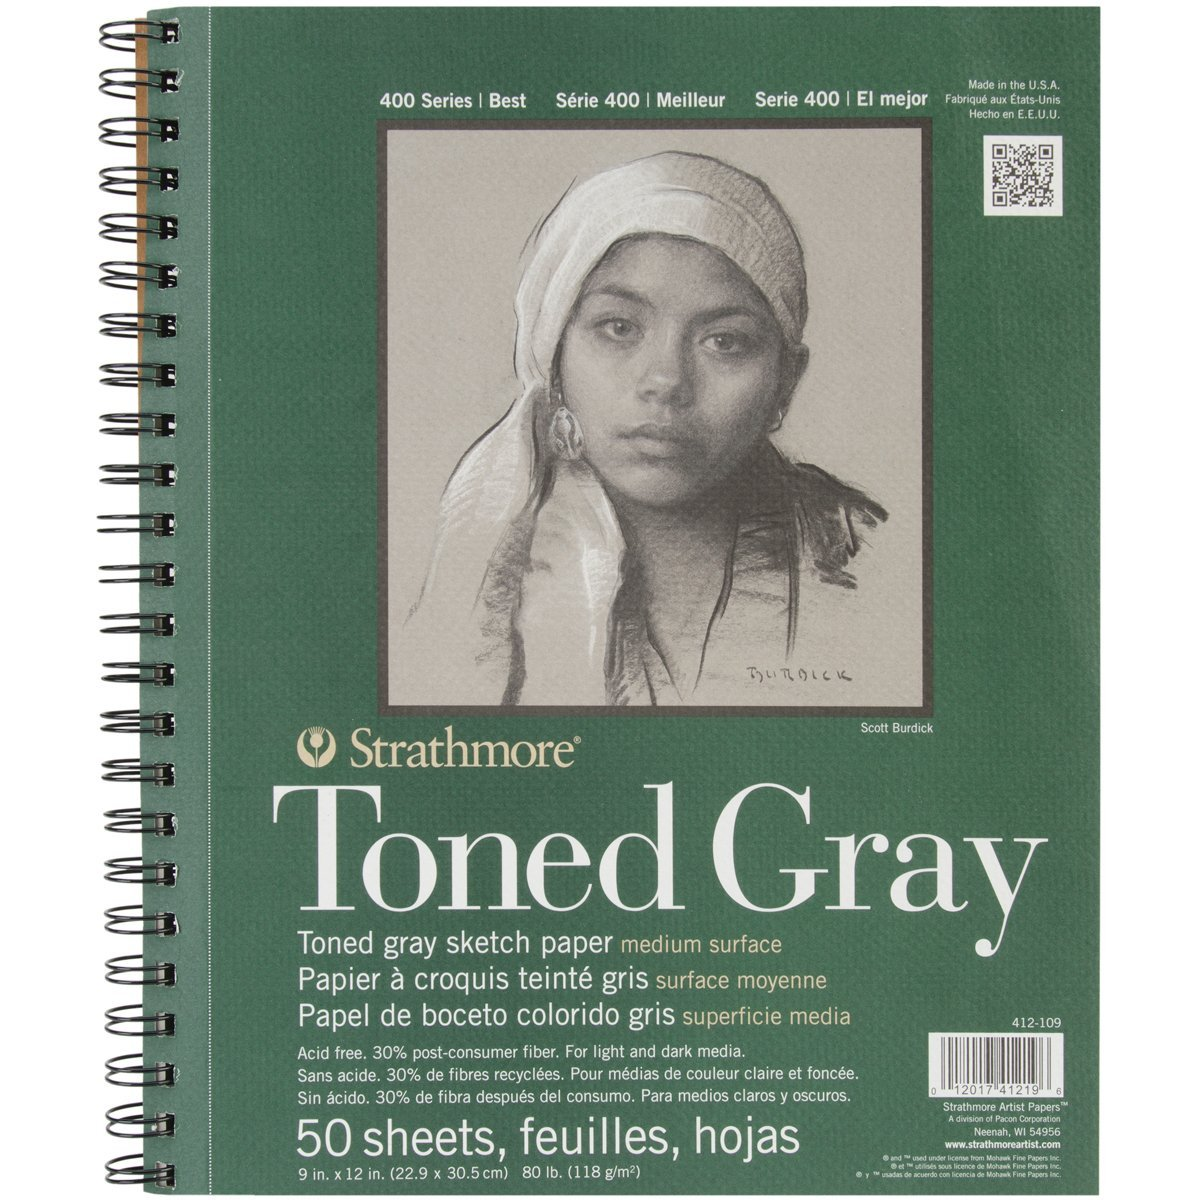 Strathmore 412-109 400 Series Toned Gray Sketch Pad 50 Sheets Each 2-Pack 9x12 Wire Bound